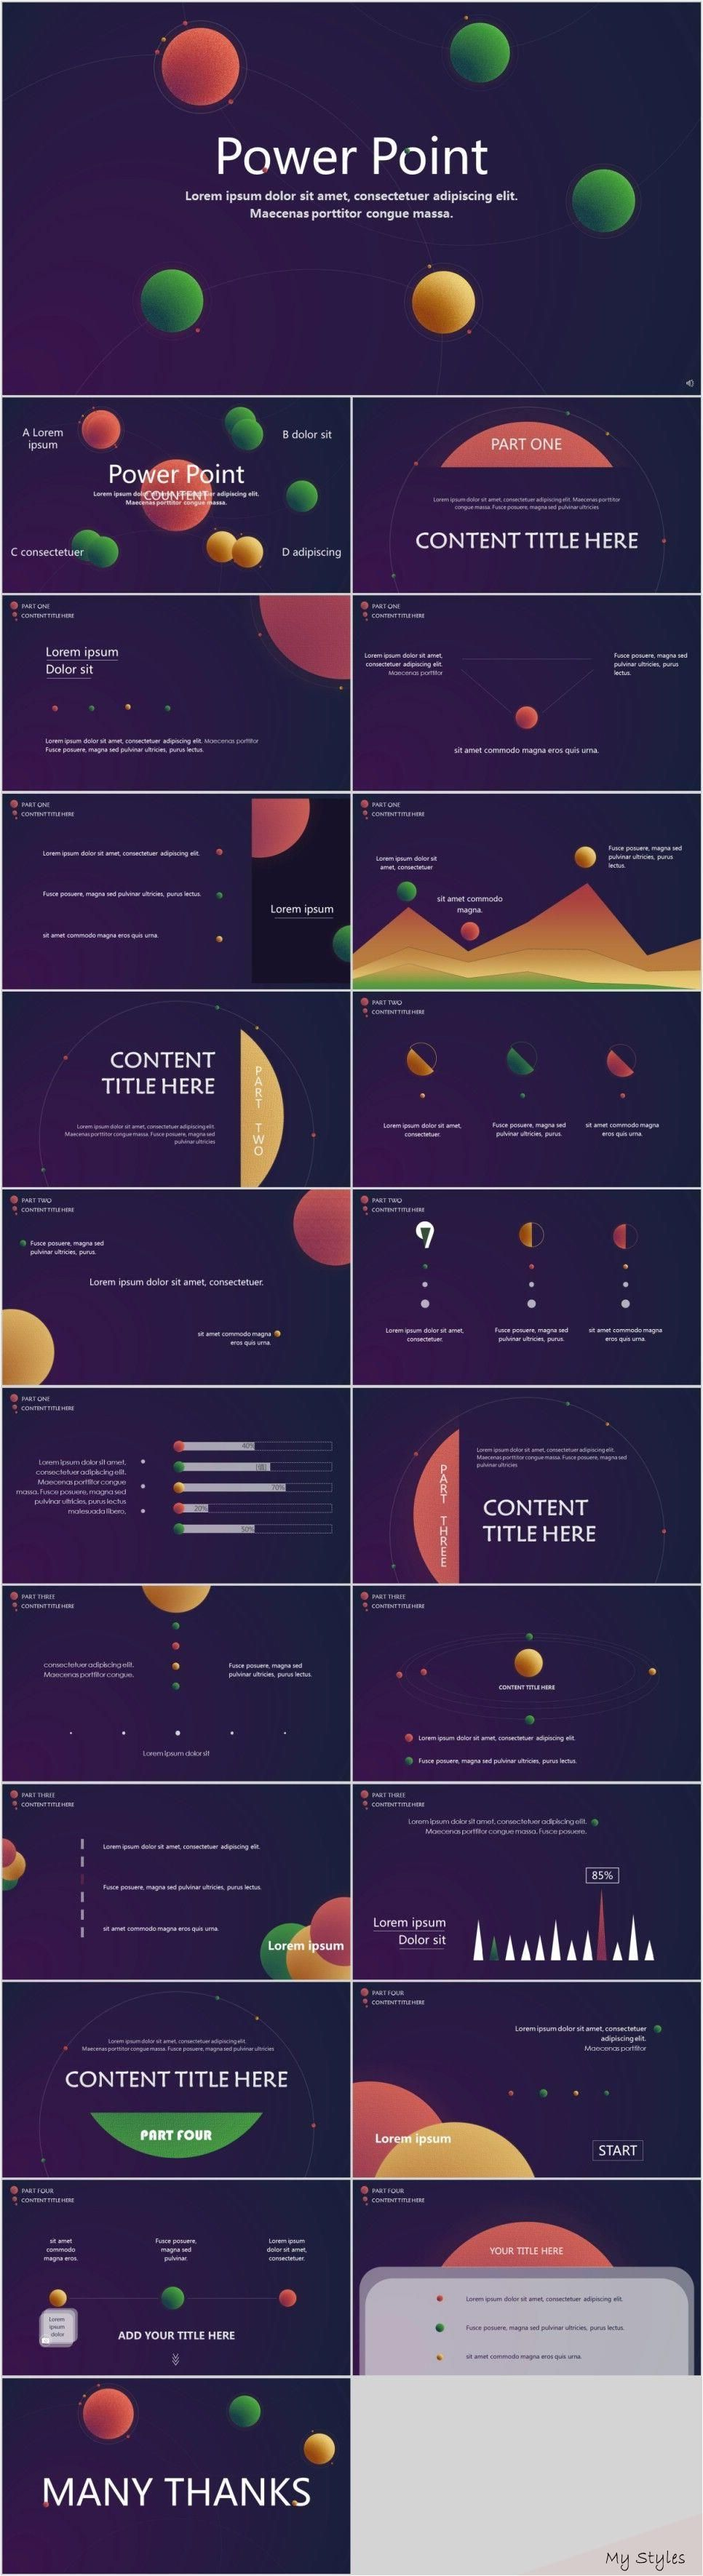 22+ Cosmic stereoscopic Dynamic PowerPoint Presentations template ,  #Cosmic #dynamic #infogr- #architectural #styles #history